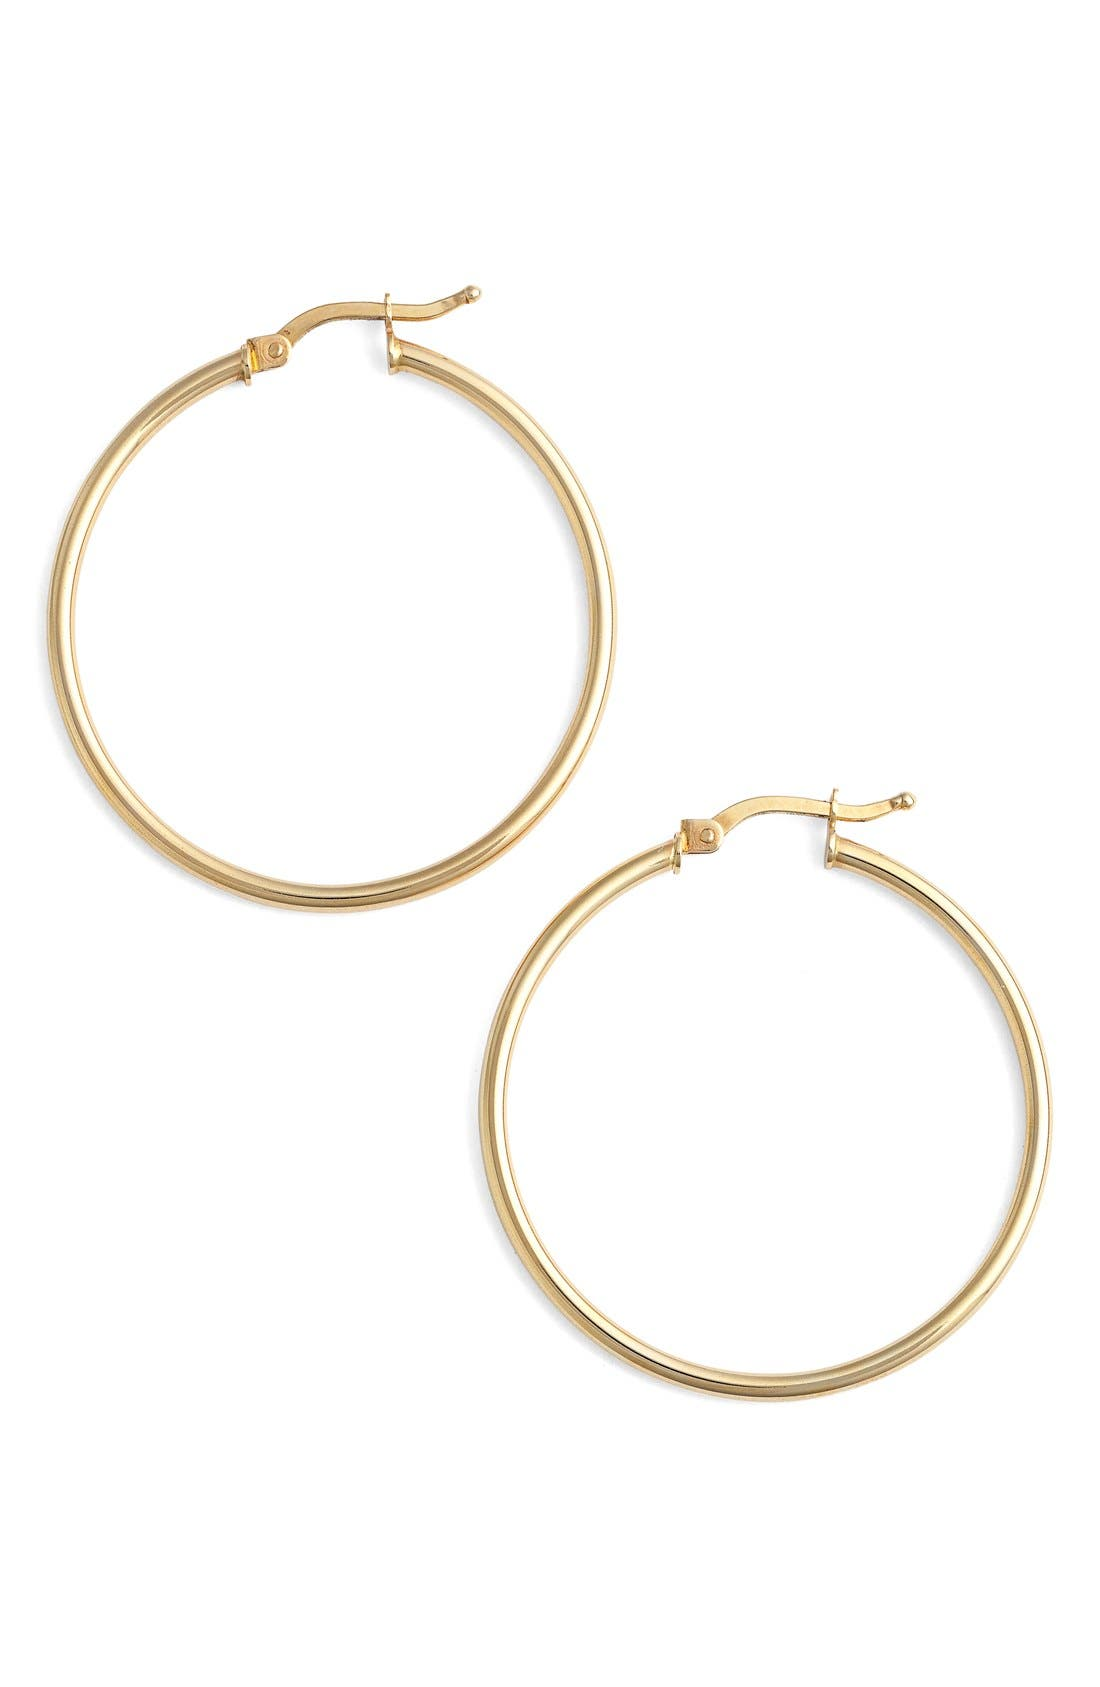 Alternate Image 1 Selected - Bony Levy 14k Gold Hoop Earrings (Nordstrom Exclusive)